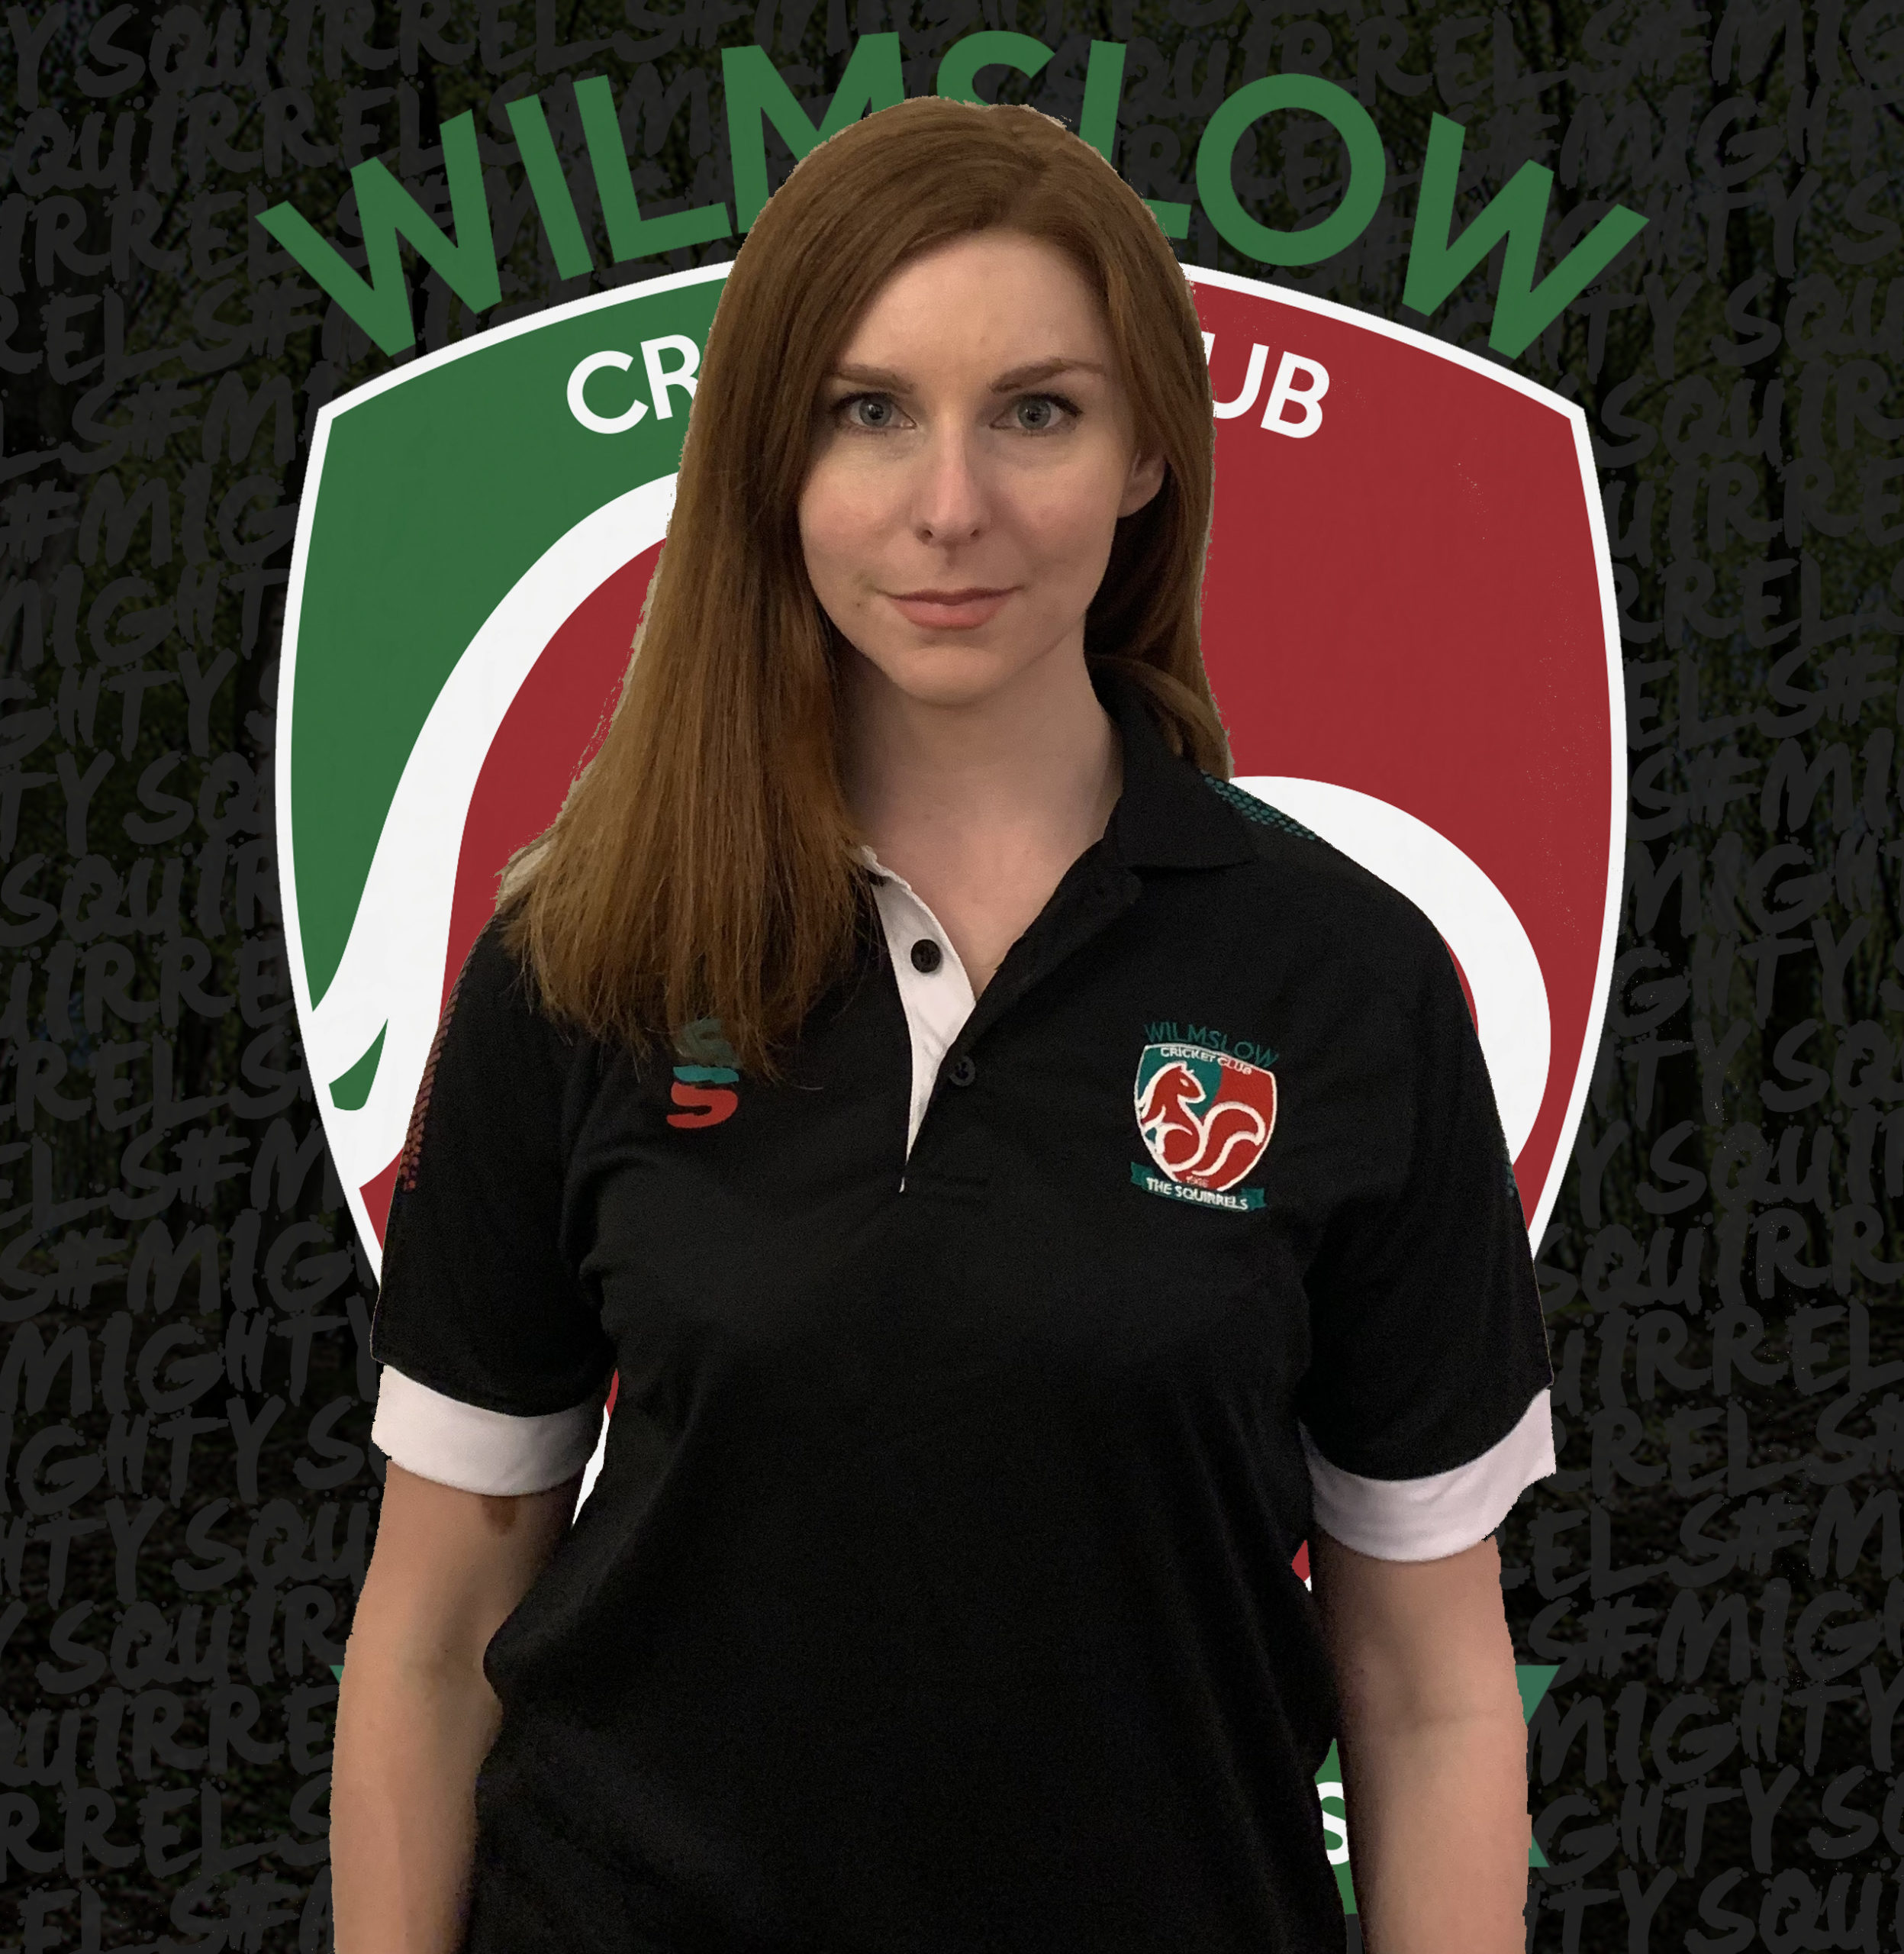 https://wilmslowcricketclub.com/wp-content/uploads/2020/03/Ash-Ladies-Page-scaled.jpg